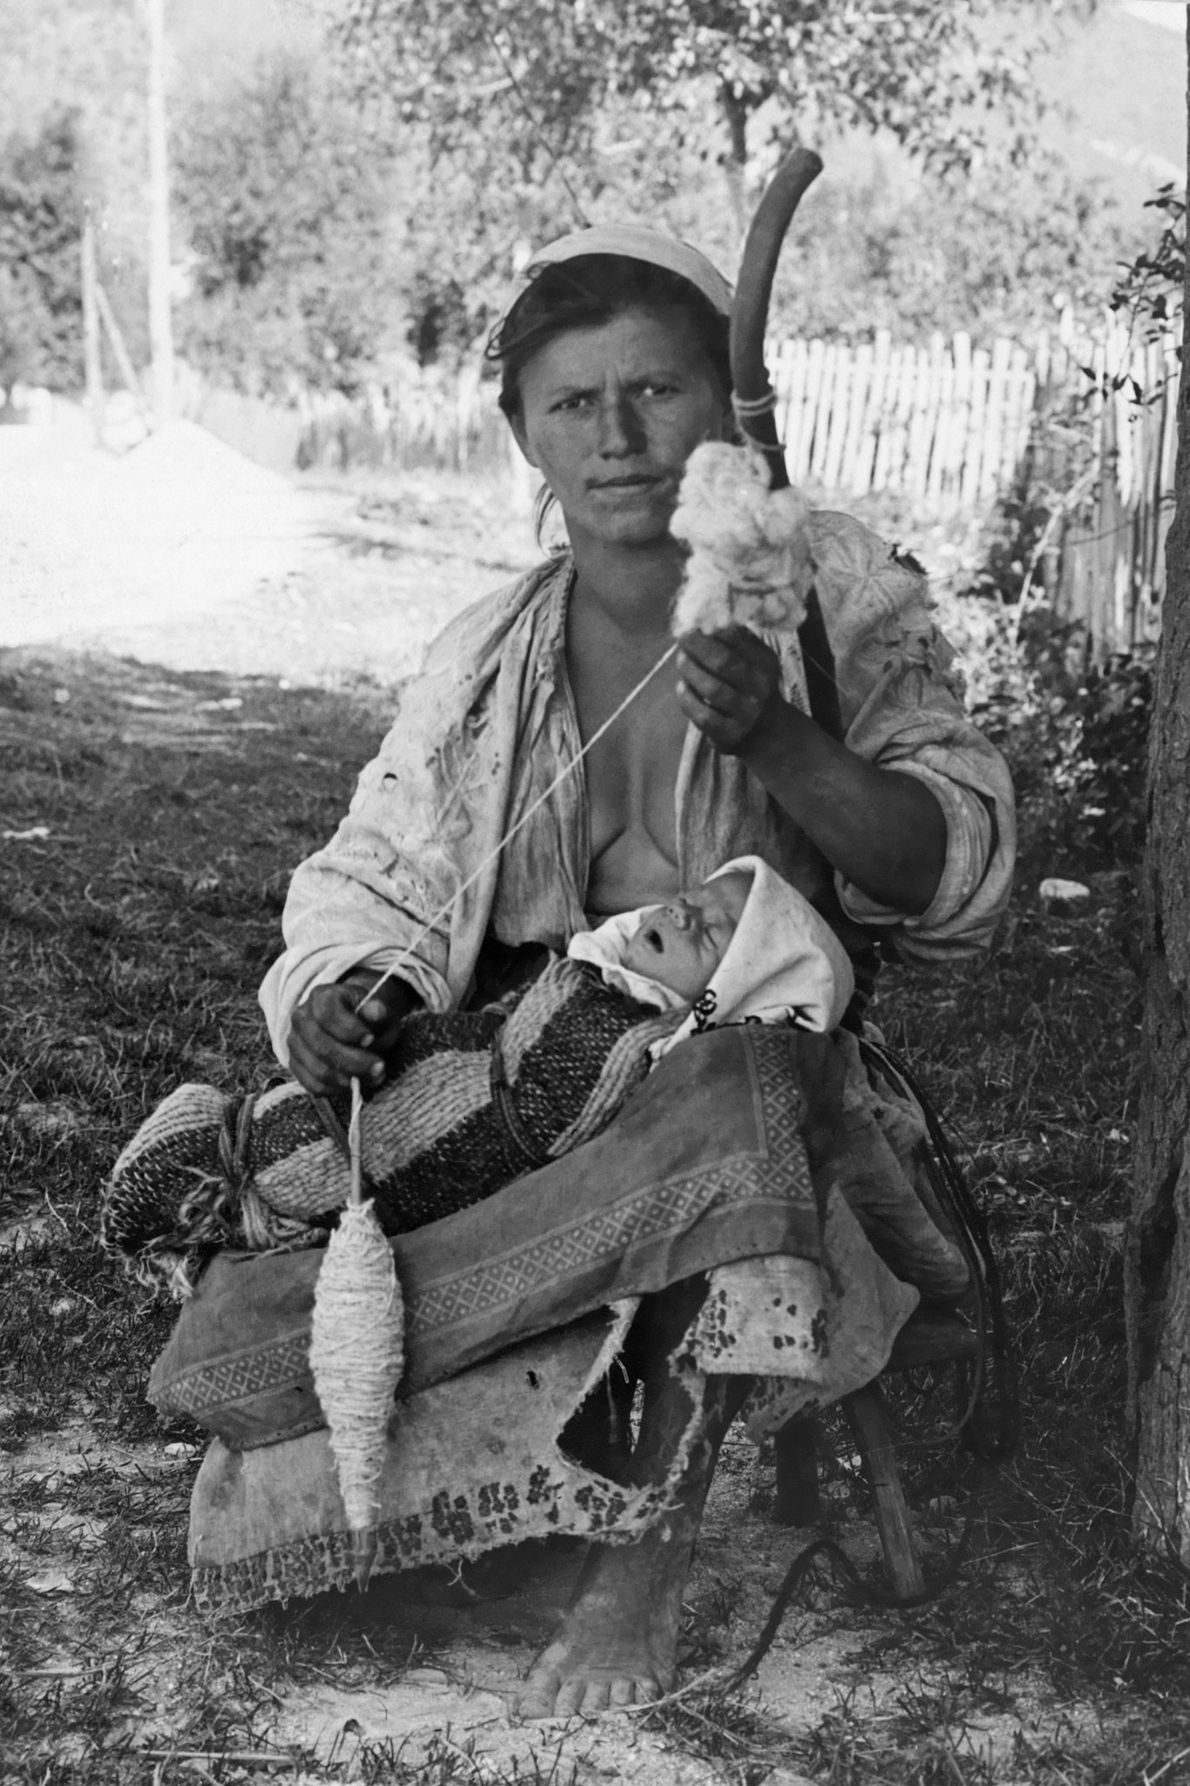 A Hungarian woman spins wool as her baby sleeps on her lap.